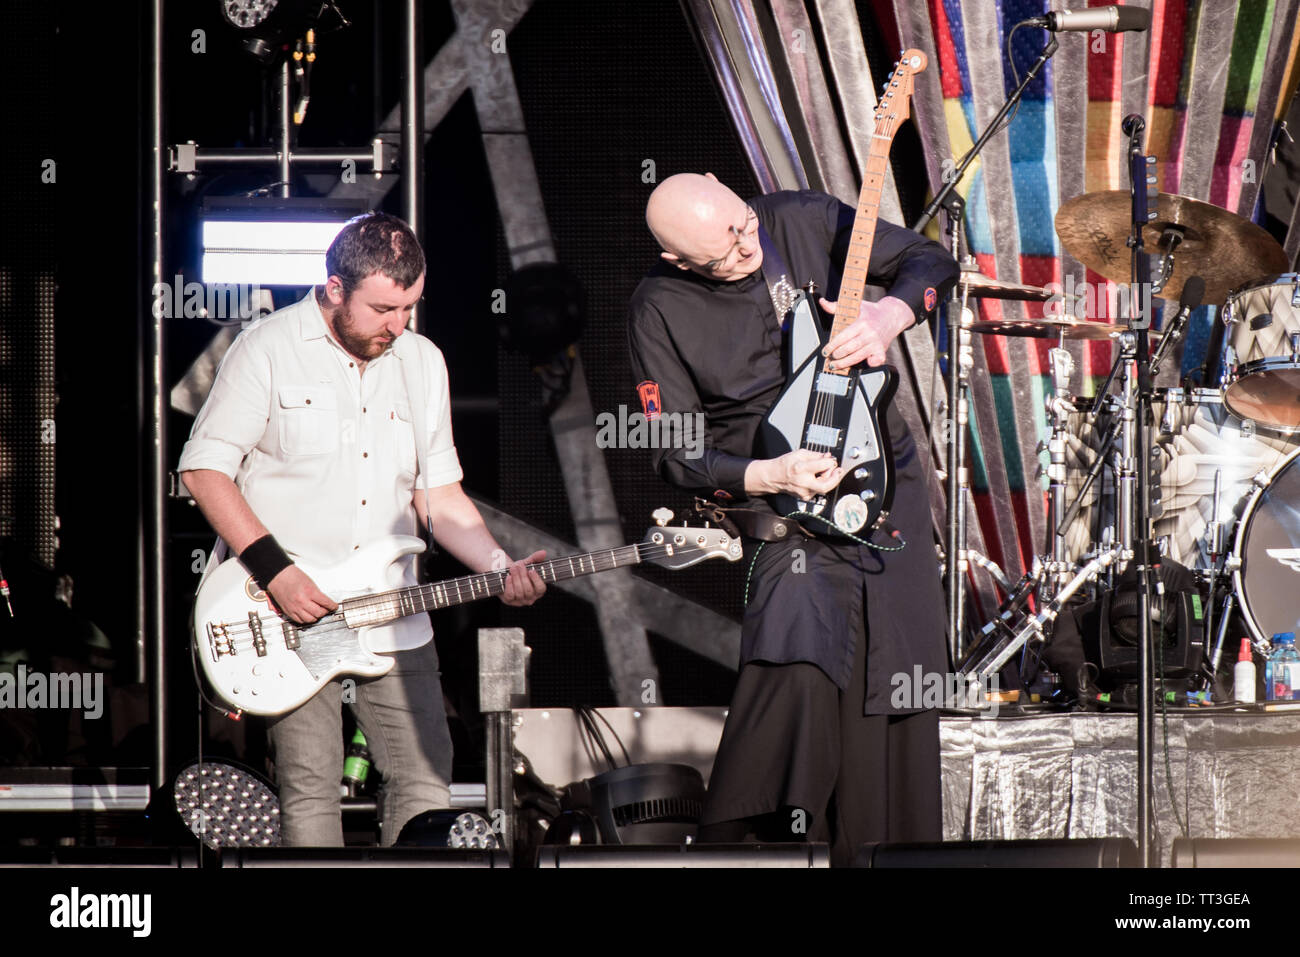 Billy Corgan, singer and guitarist of the American rock band Smashing Pumpkins, performing live on stage at the Firenze Rocks festival 2019 in Florenc - Stock Image